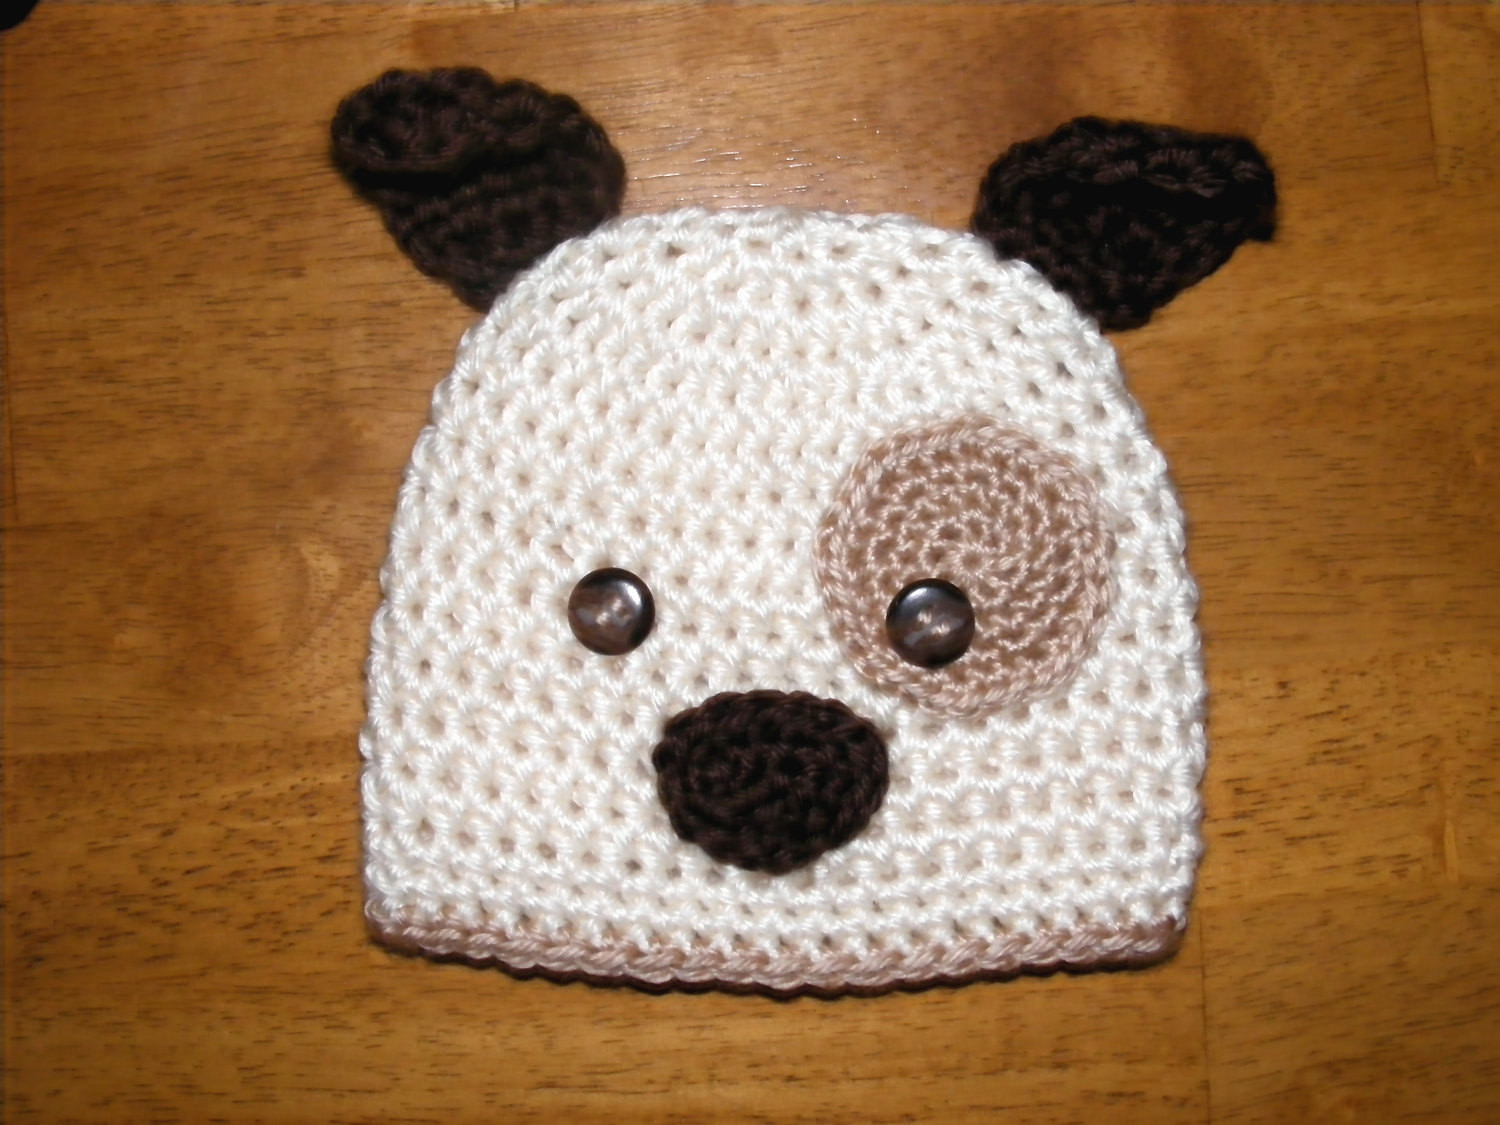 Crochet Dog Elegant Crochet Pattern Hat Hound Dog Beanie and Earflap Pattern Of Perfect 50 Images Crochet Dog